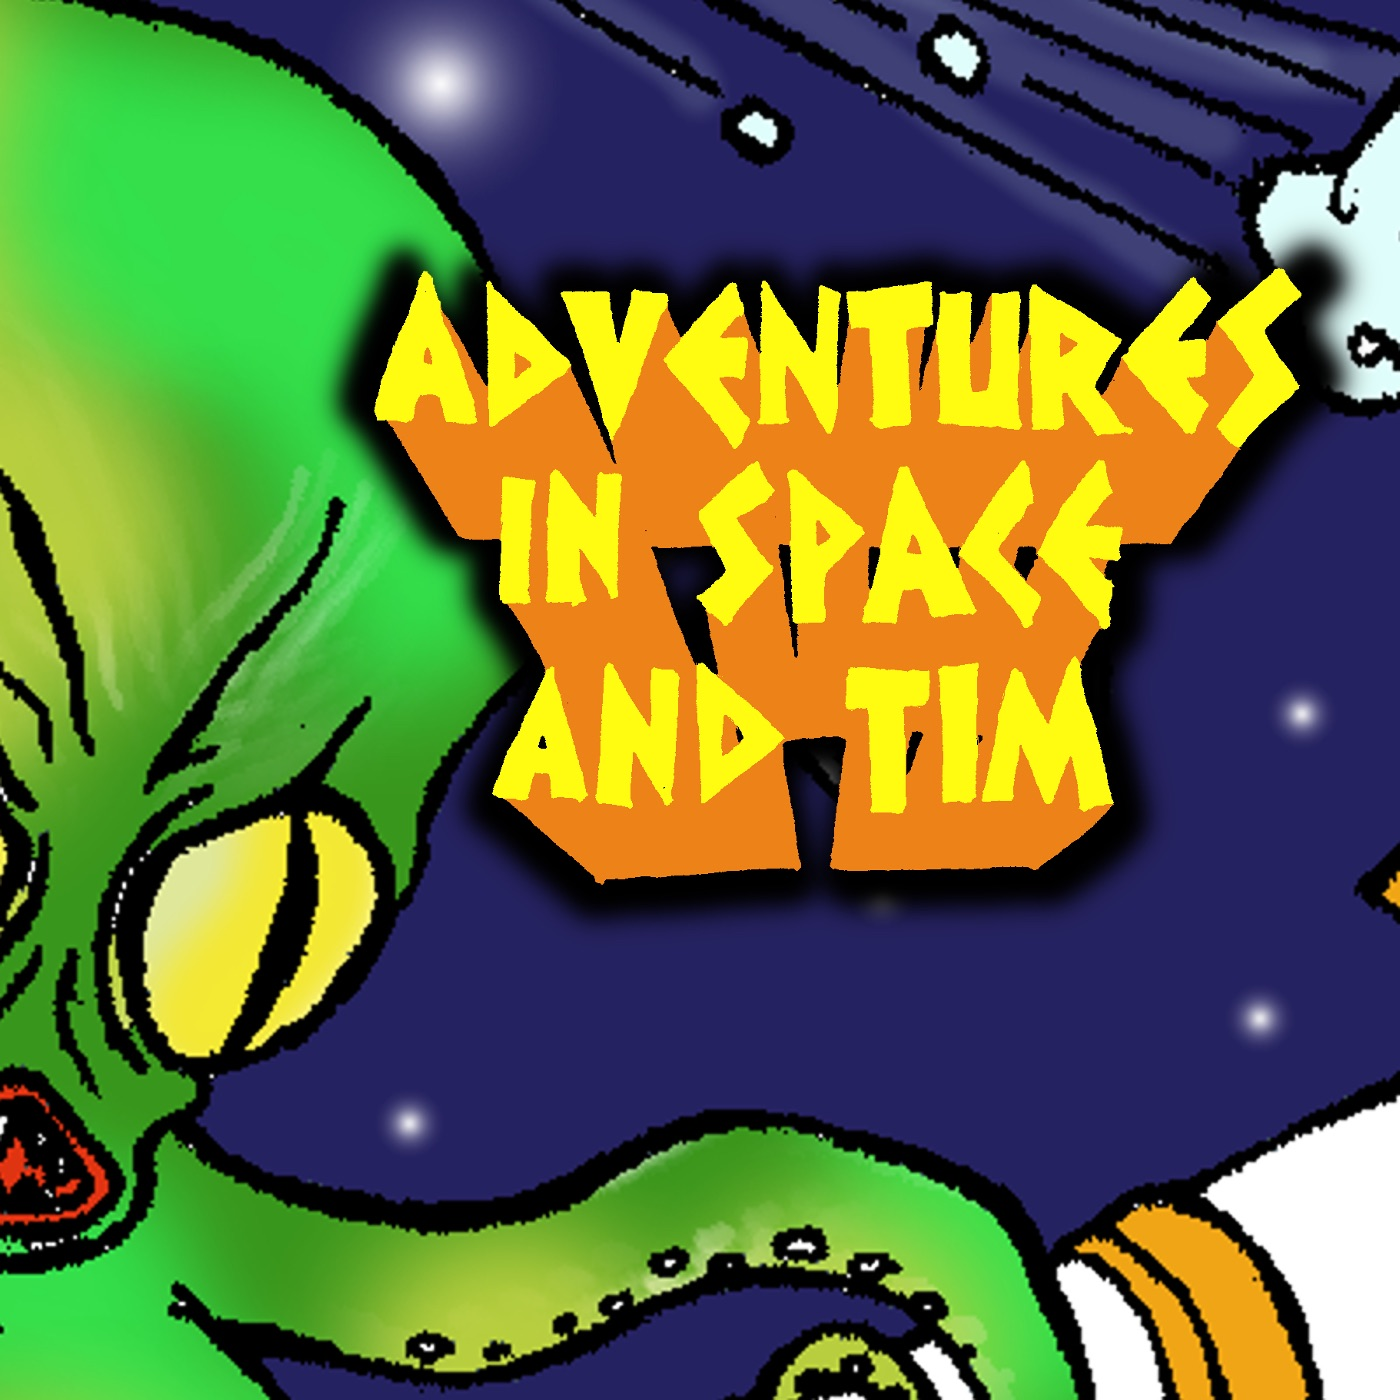 Adventures in Space and Tim